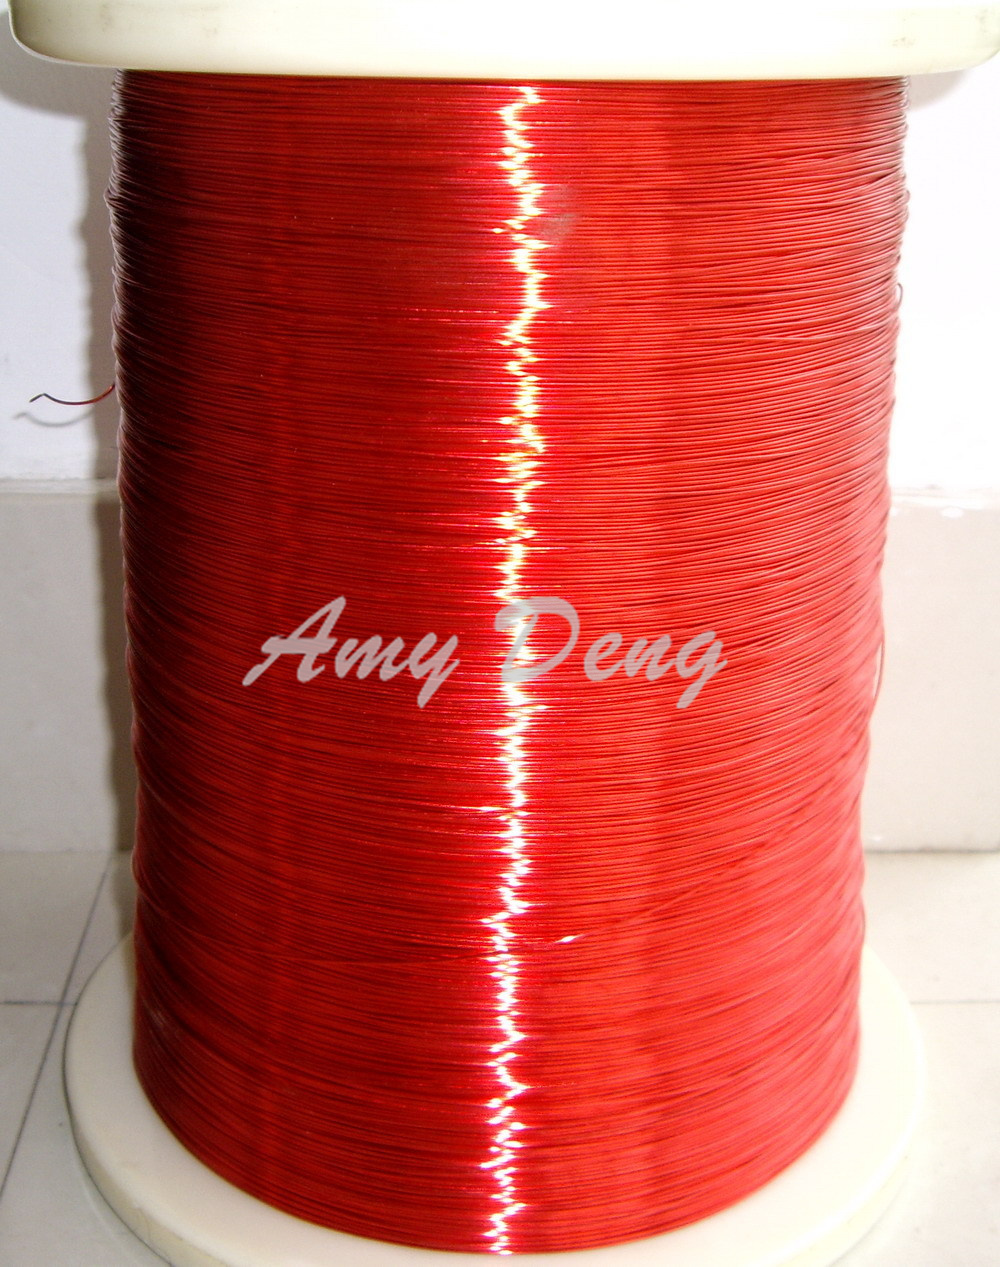 500 Meters/lot  0.38 Mm Red New Polyurethane Enamel Covered Wire 2UEW QA-1-155 1 Meters From The Sale